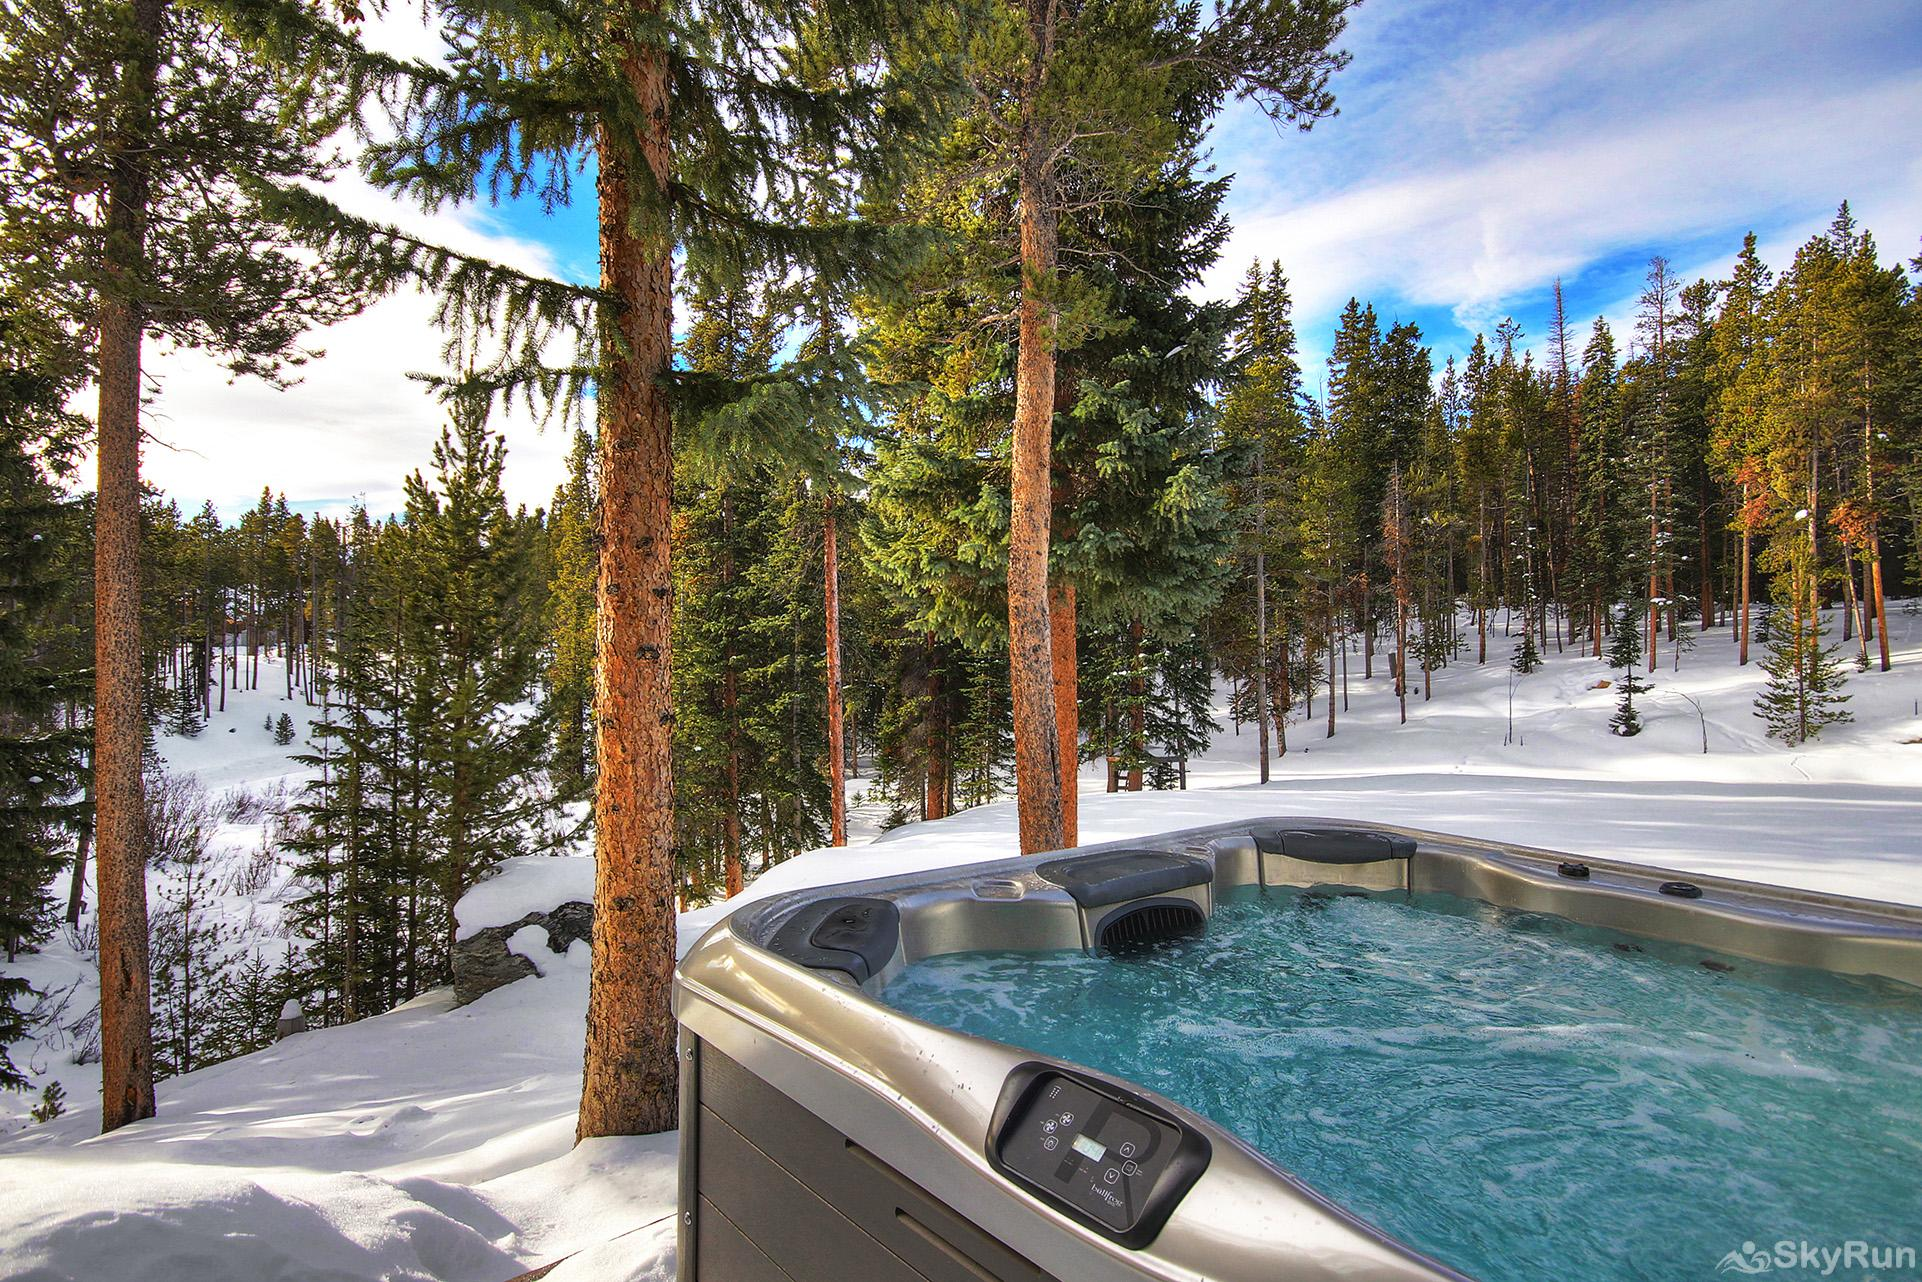 Summit Solitude Estate Soak in the private outdoor hot tub after a day of fun adventures!